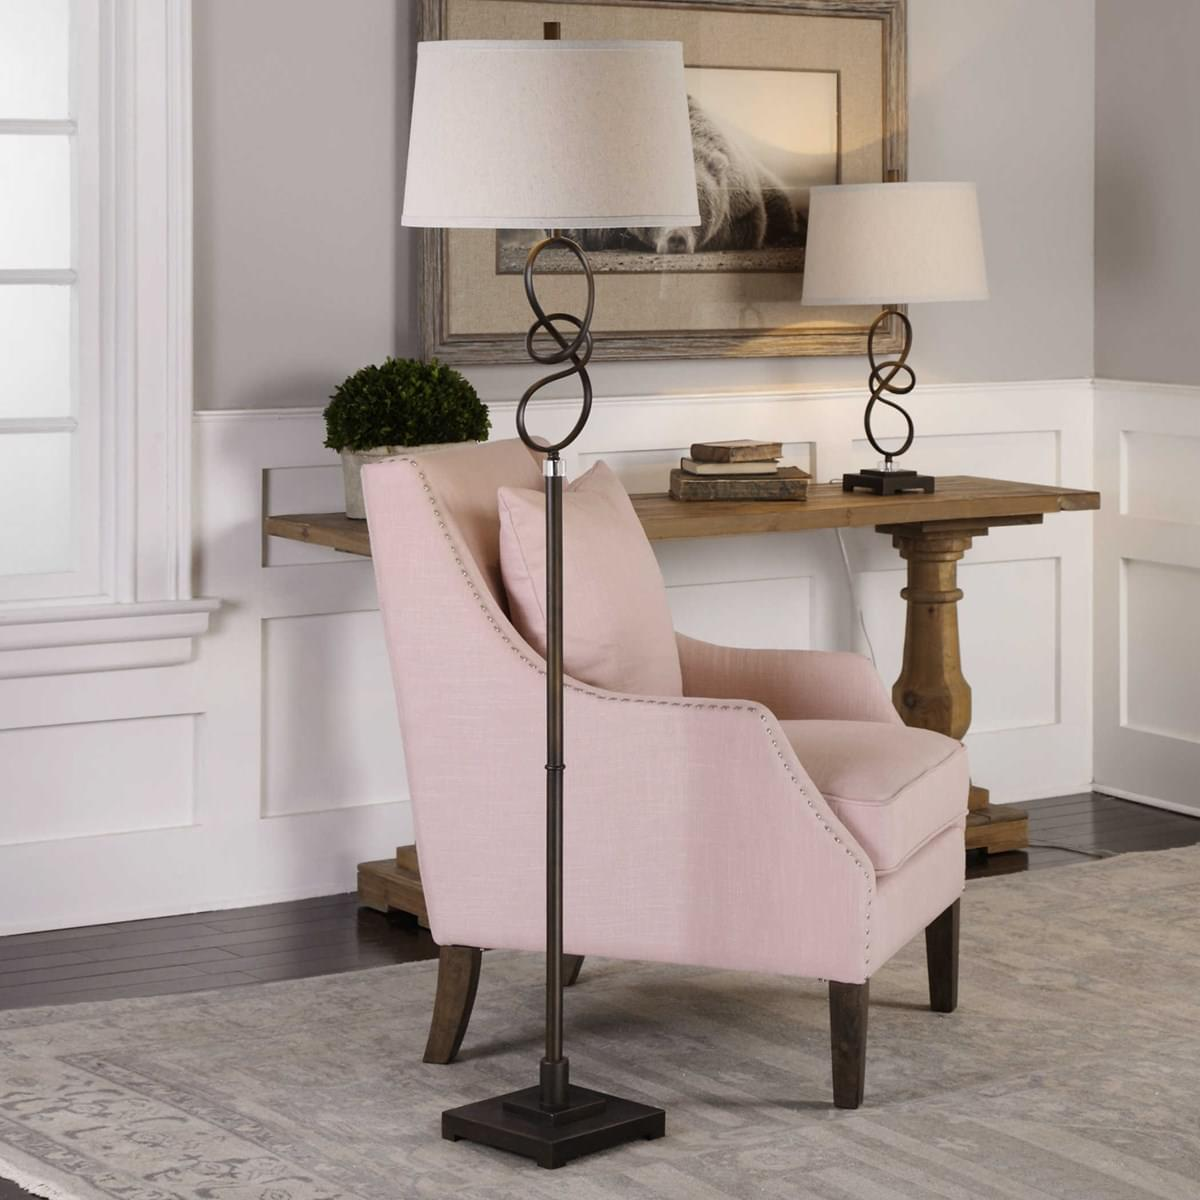 Uttermost Tenley Floor Lamp at Mums Place Furniture Monterey CA